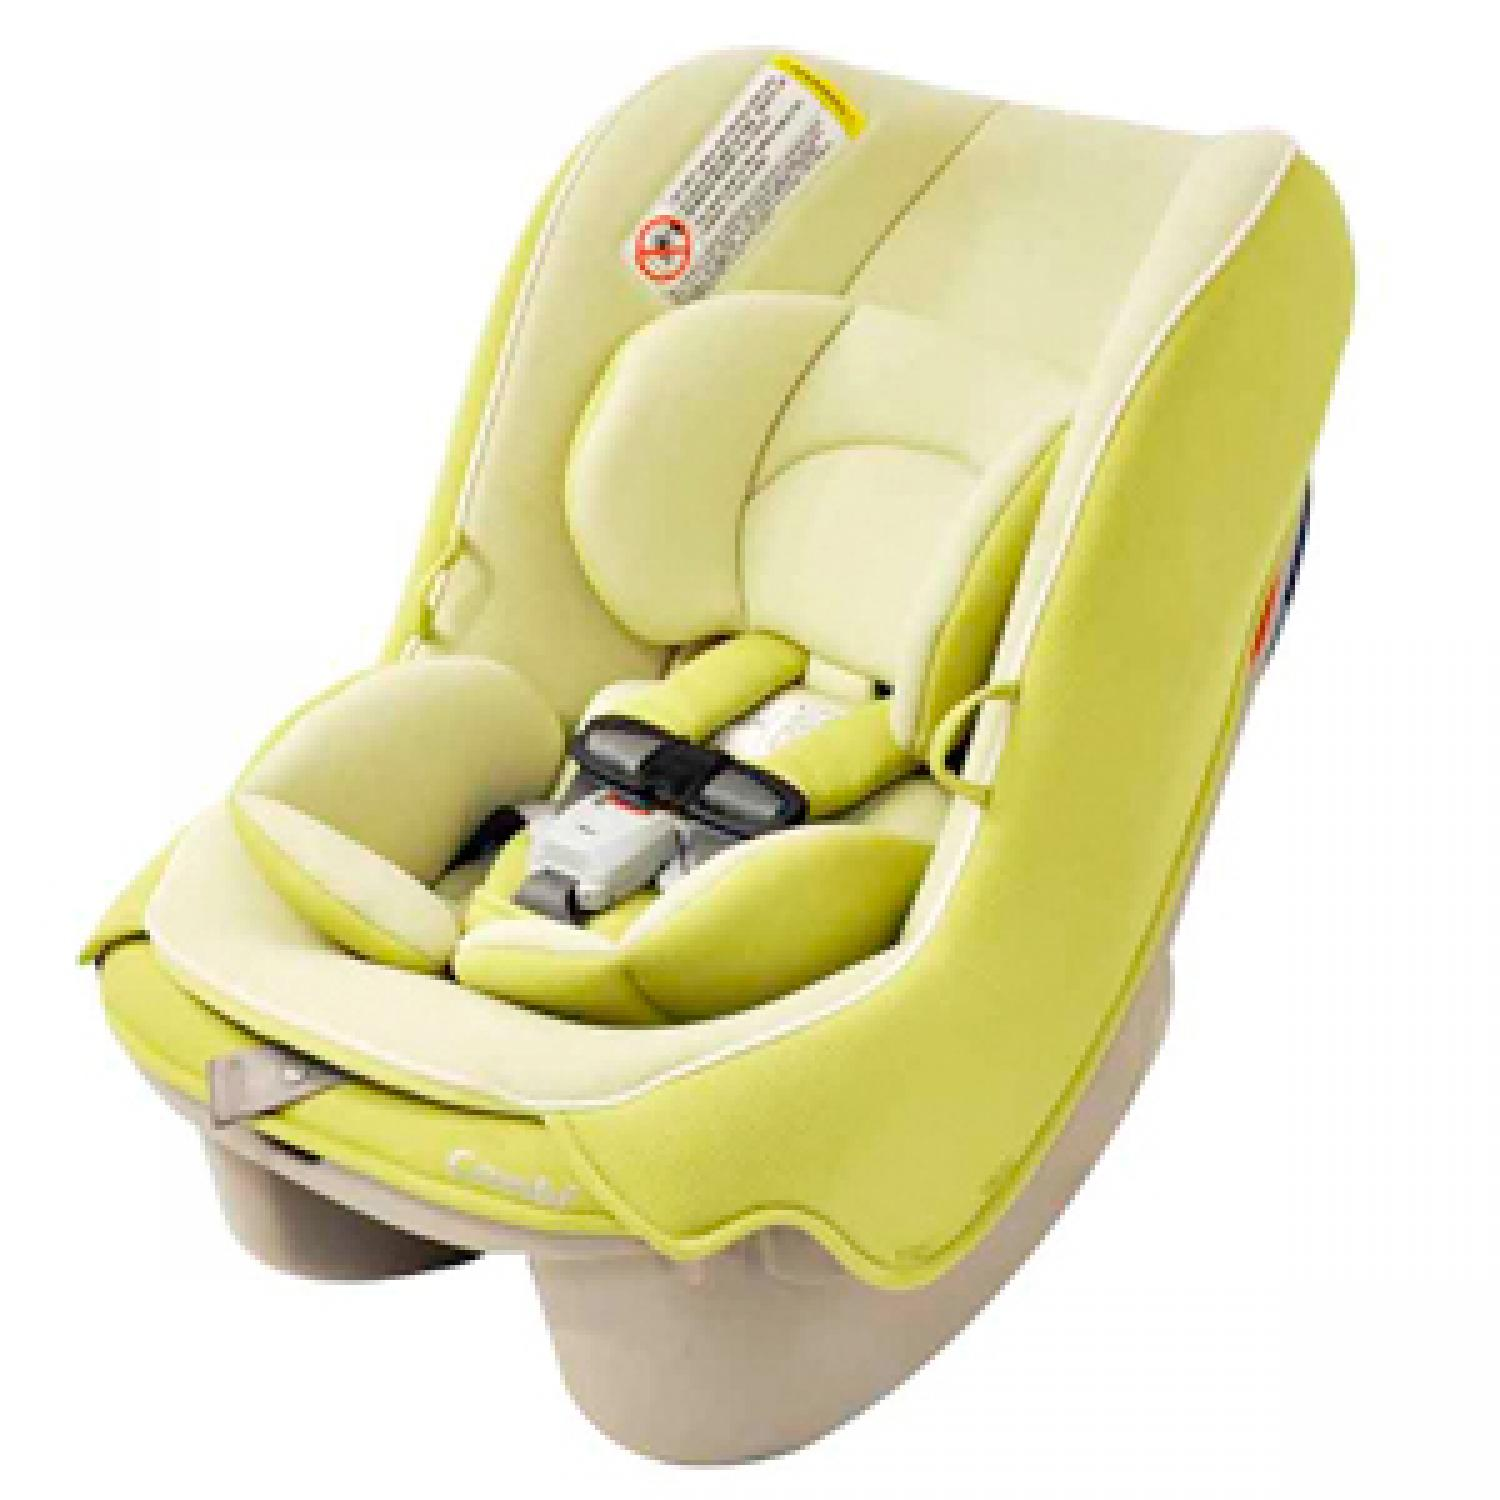 faq traveling with car seats on airplanes parenting